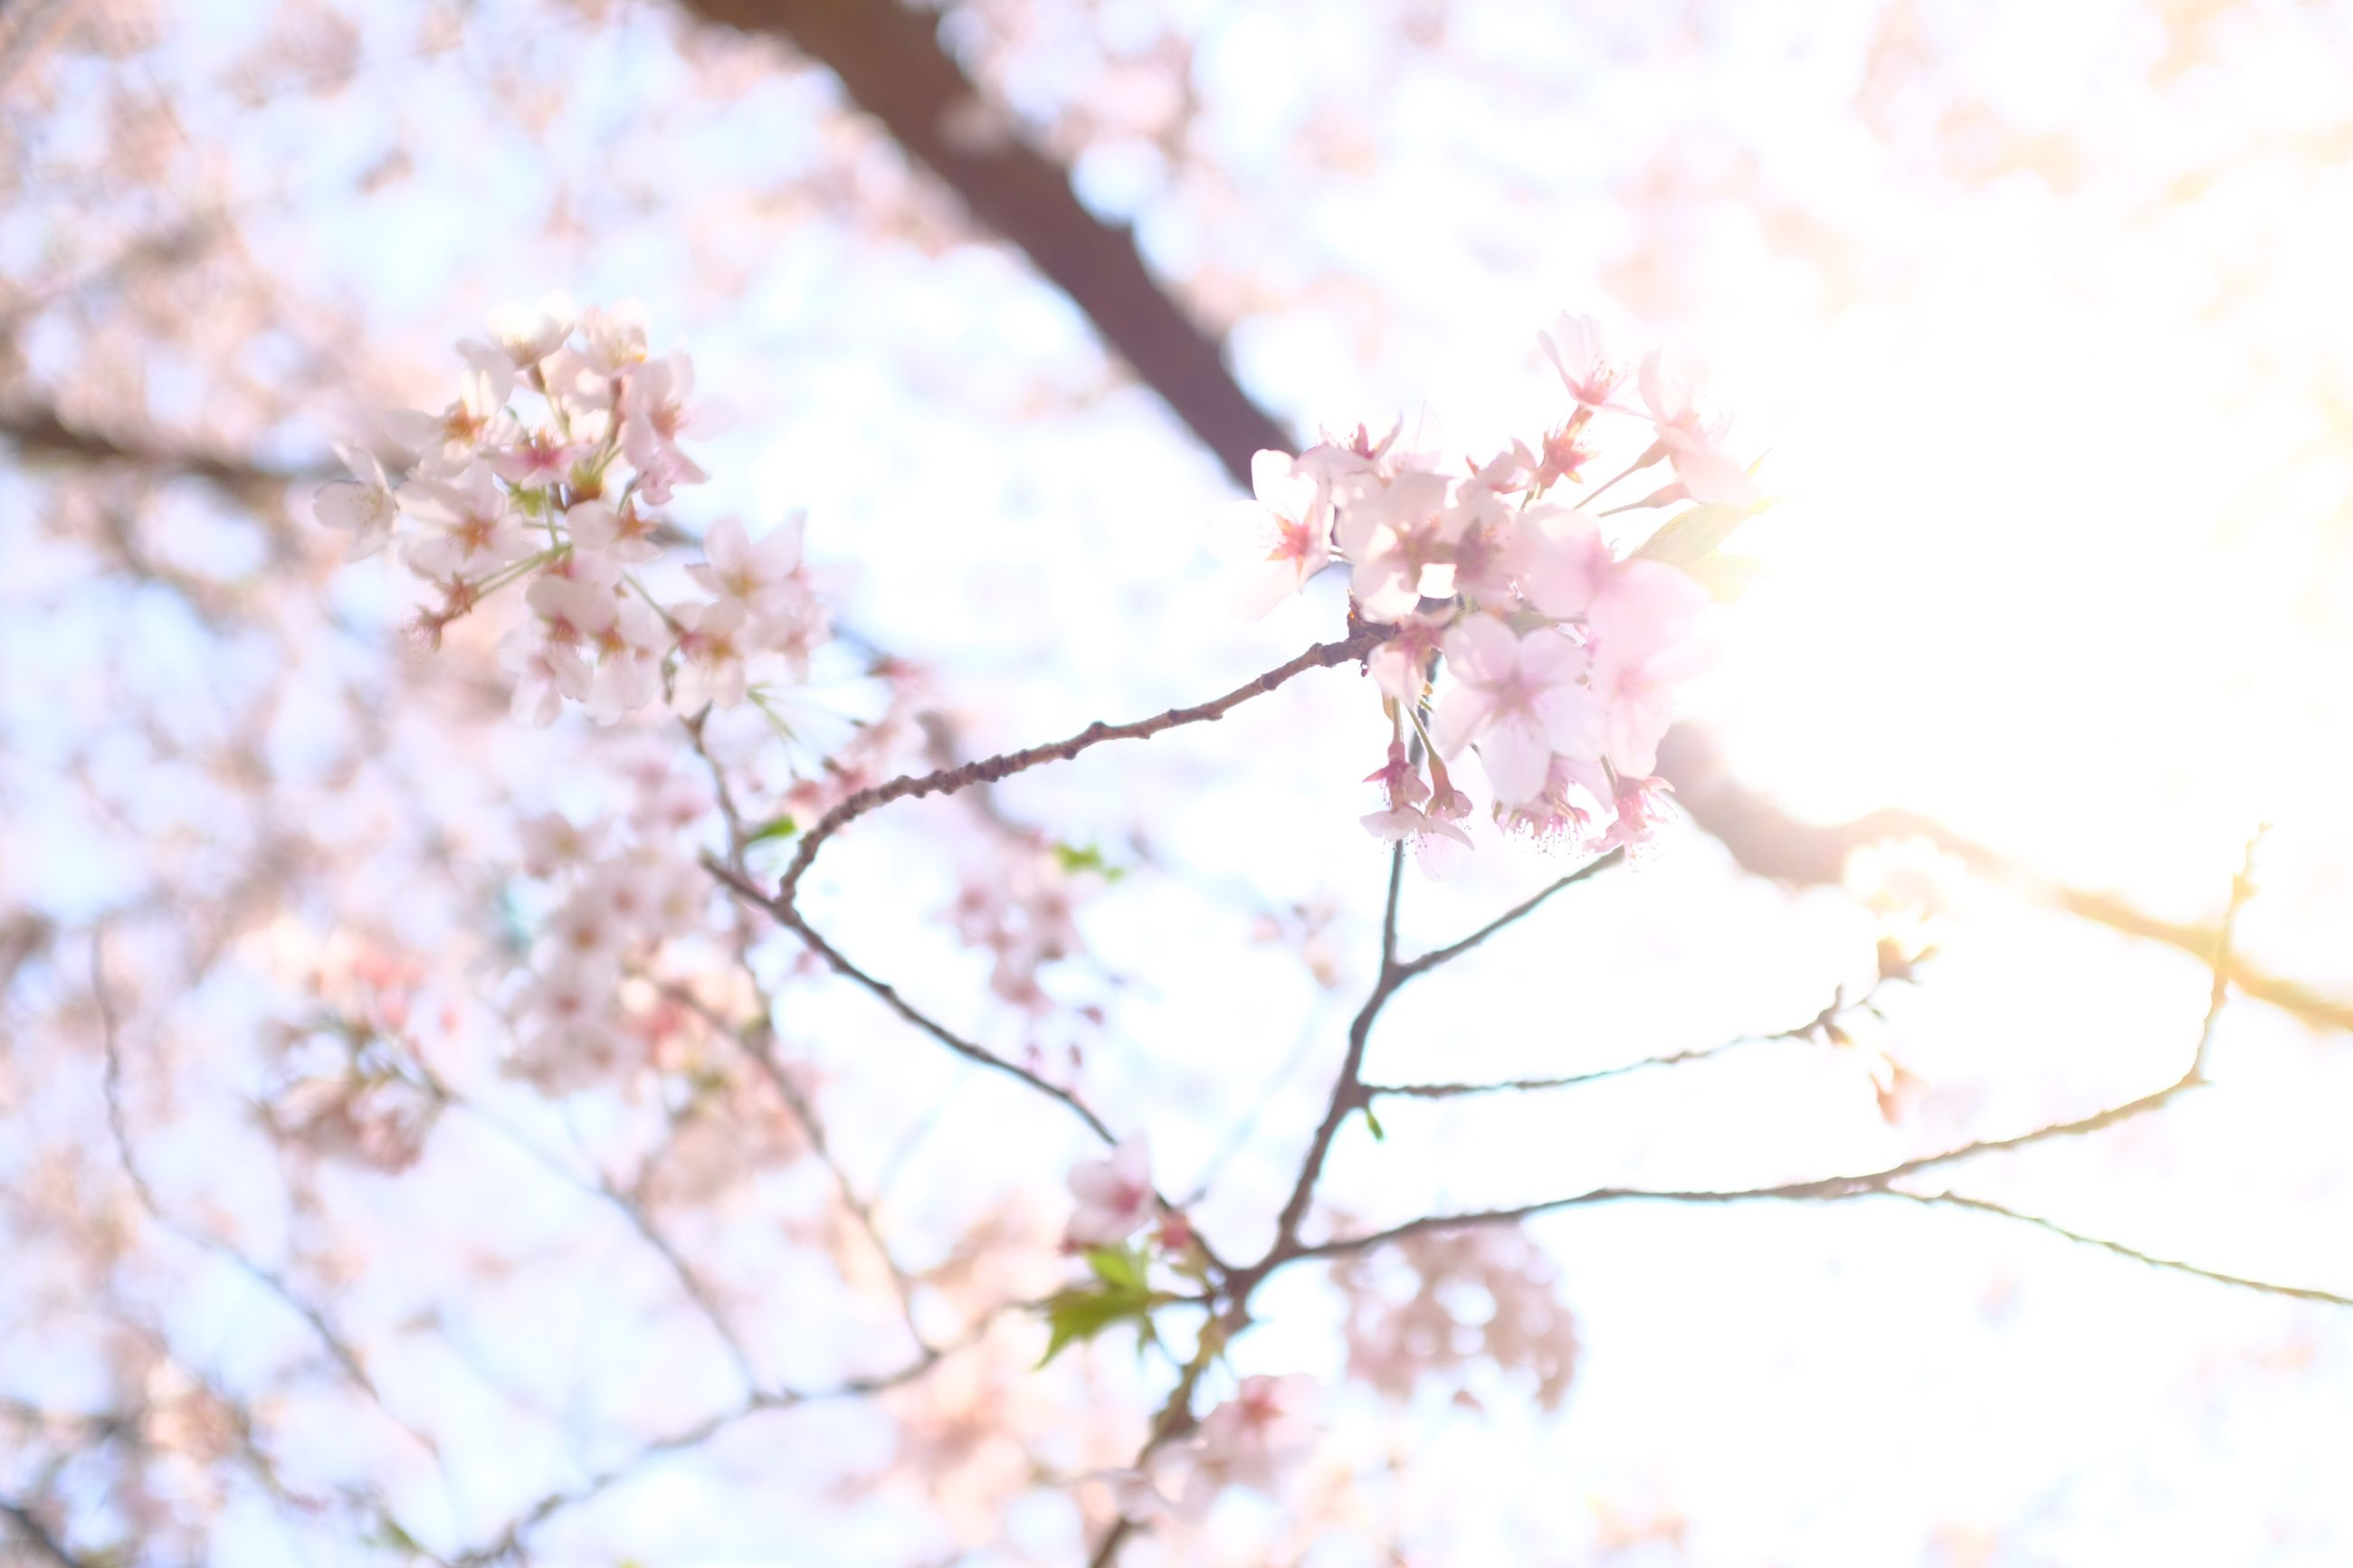 flowering plant, plant, flower, tree, growth, beauty in nature, fragility, branch, pink color, freshness, blossom, vulnerability, nature, cherry blossom, low angle view, cherry tree, springtime, day, close-up, no people, outdoors, flower head, bunch of flowers, spring